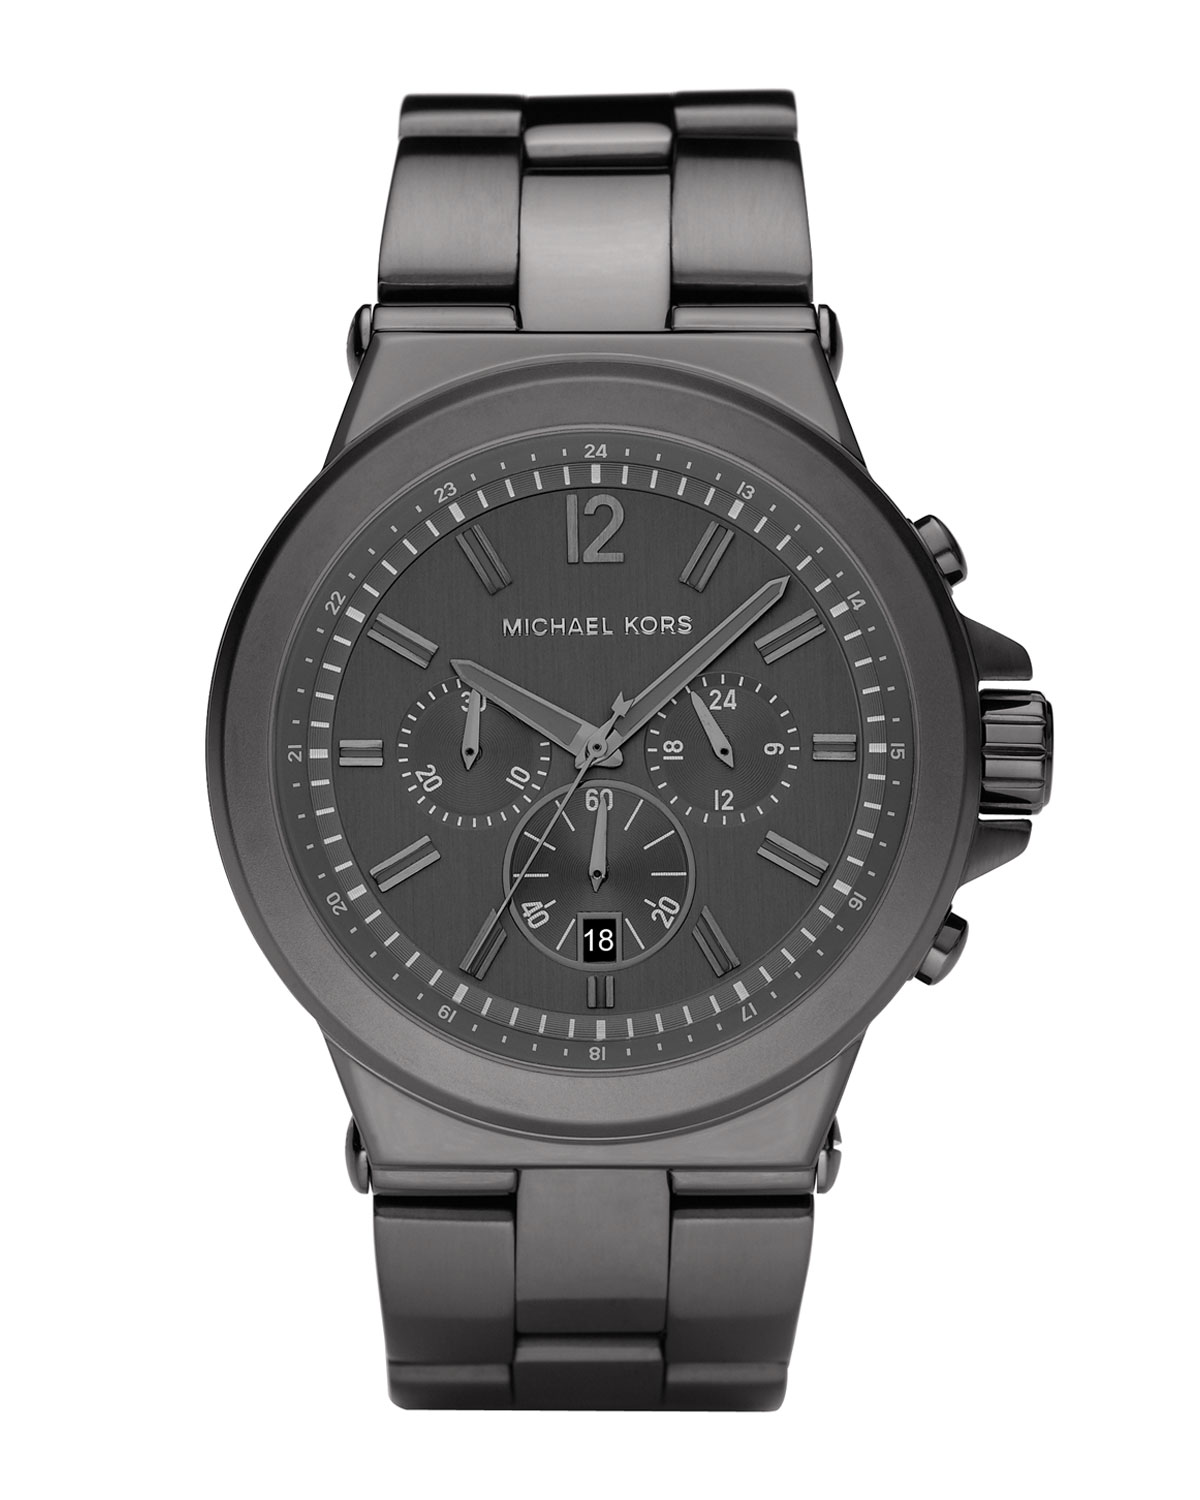 michael kors mens dylan chronograph watch gunmetal in gray for men gallery previously at neiman marcus · men s michael kors chronograph